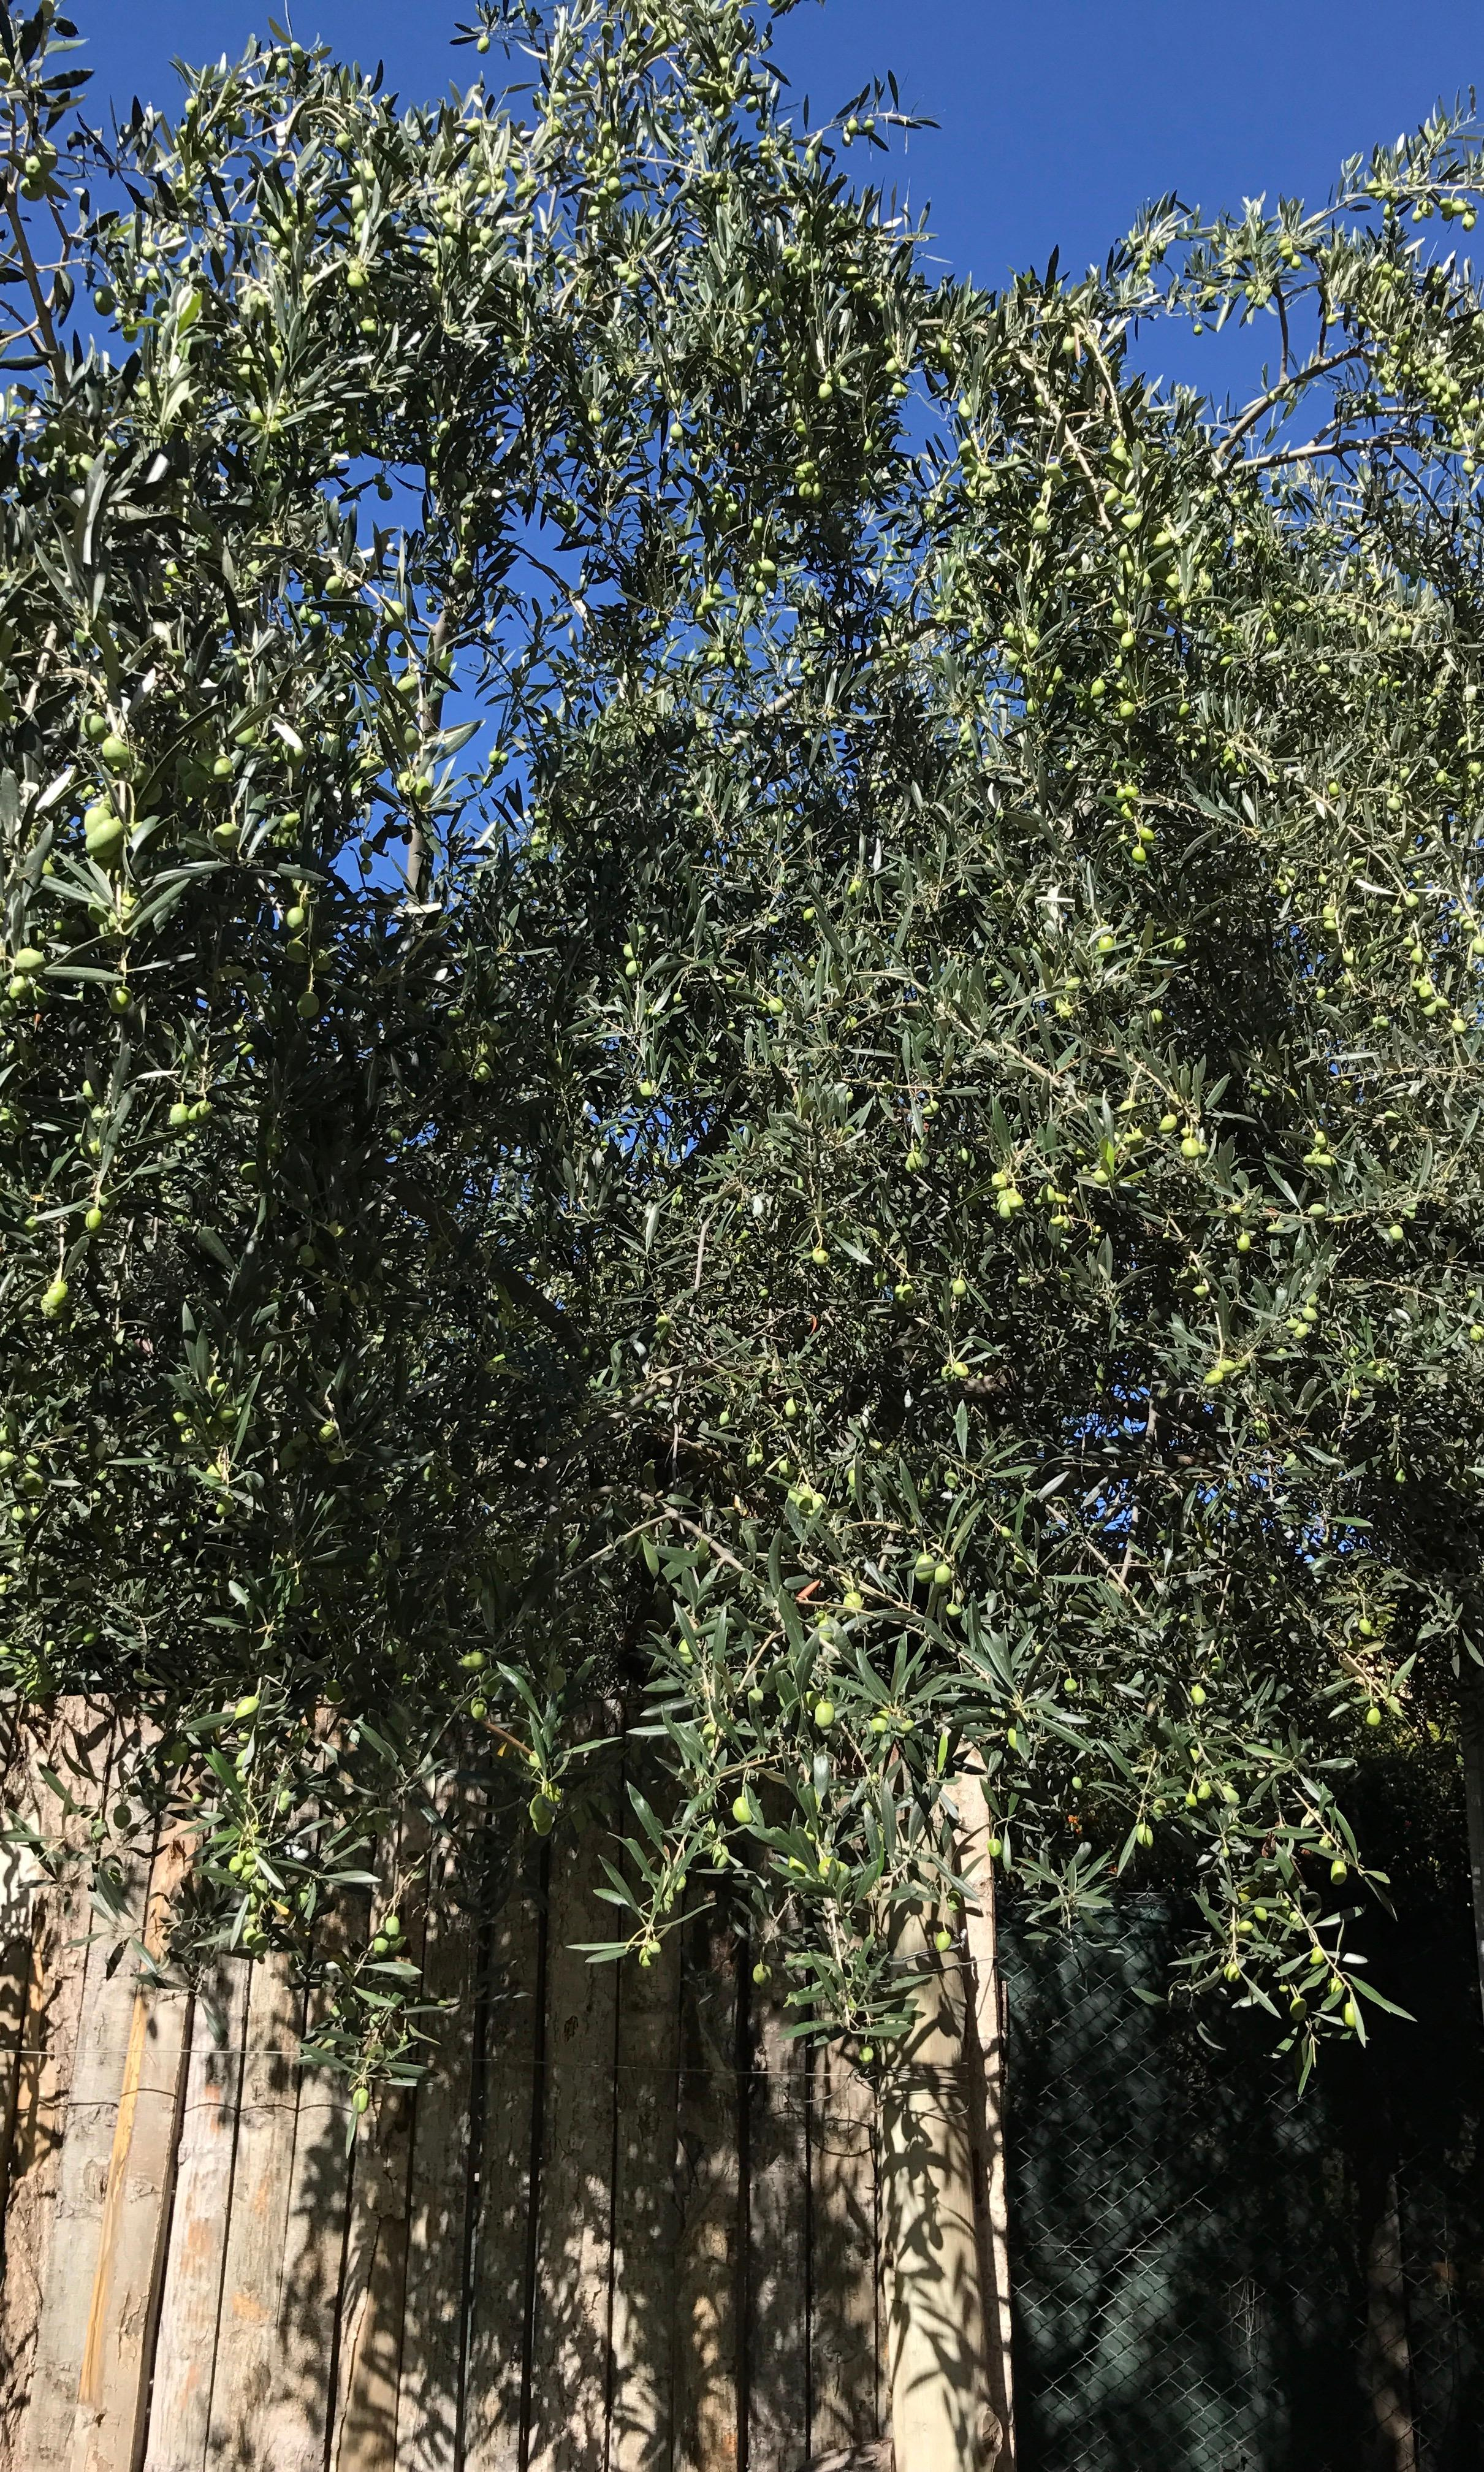 Olive tree in courtyard 😊